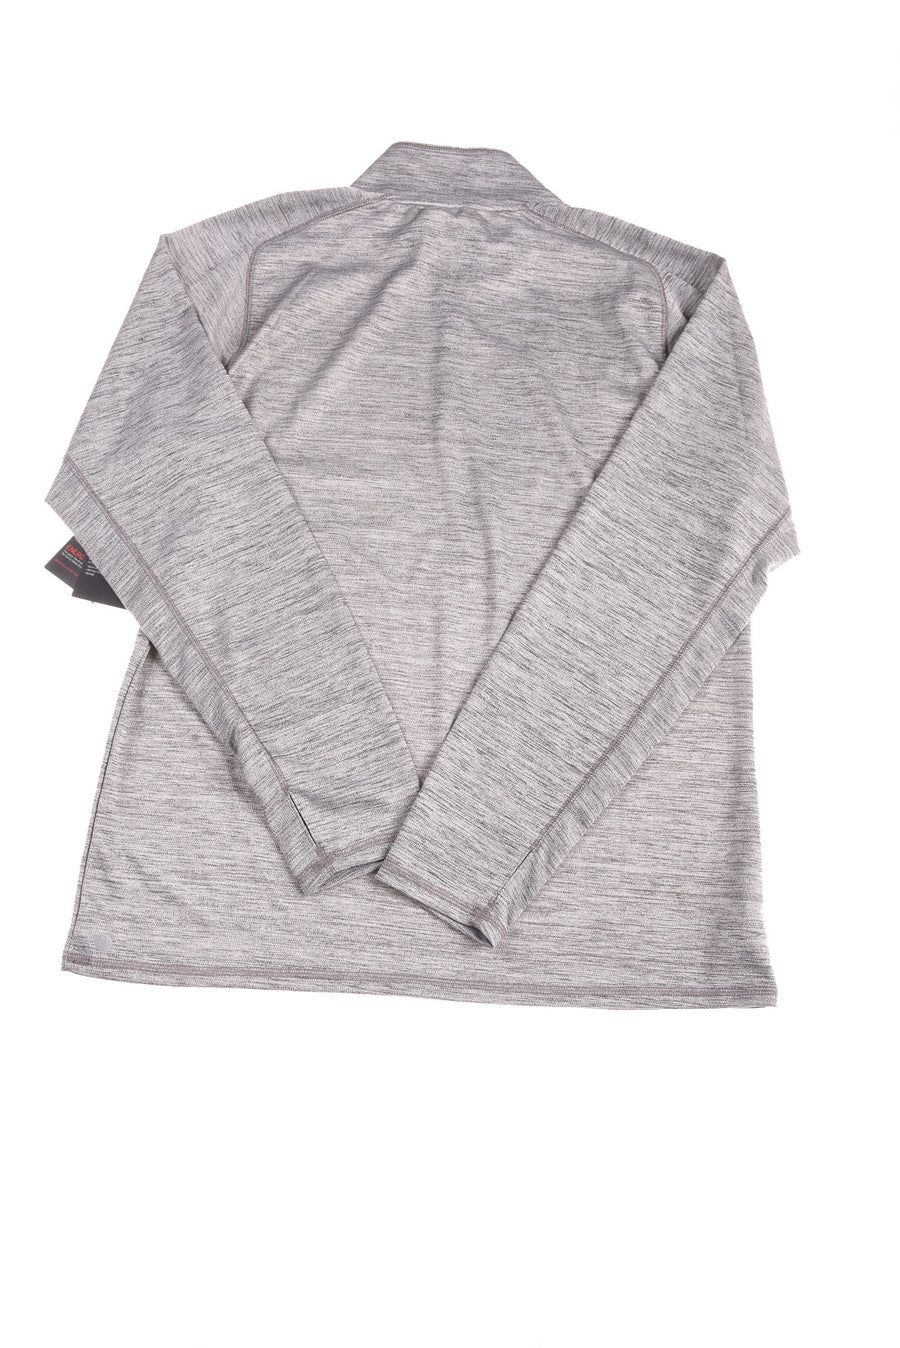 NEW Zella Women's Active Top Large Gray & Black